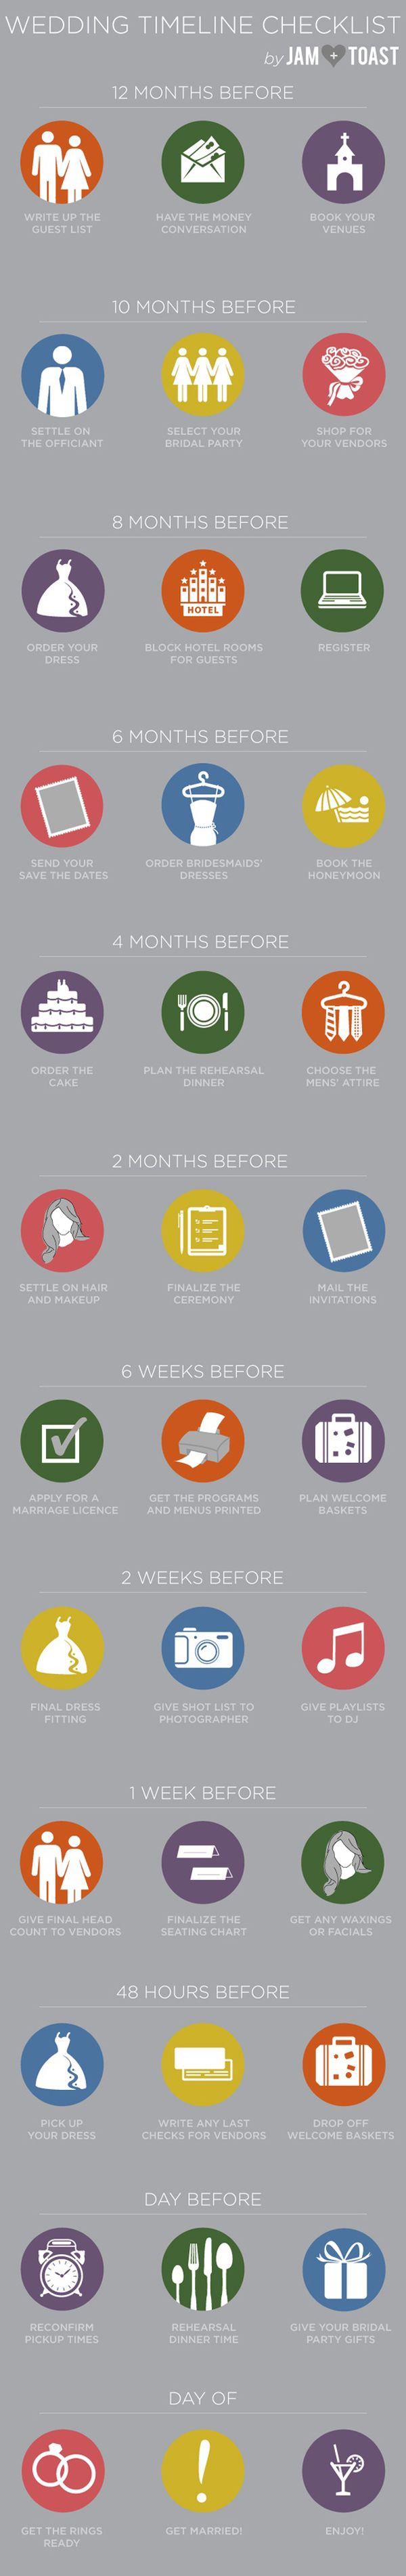 the most helpful wedding planning timeline and checklist for new